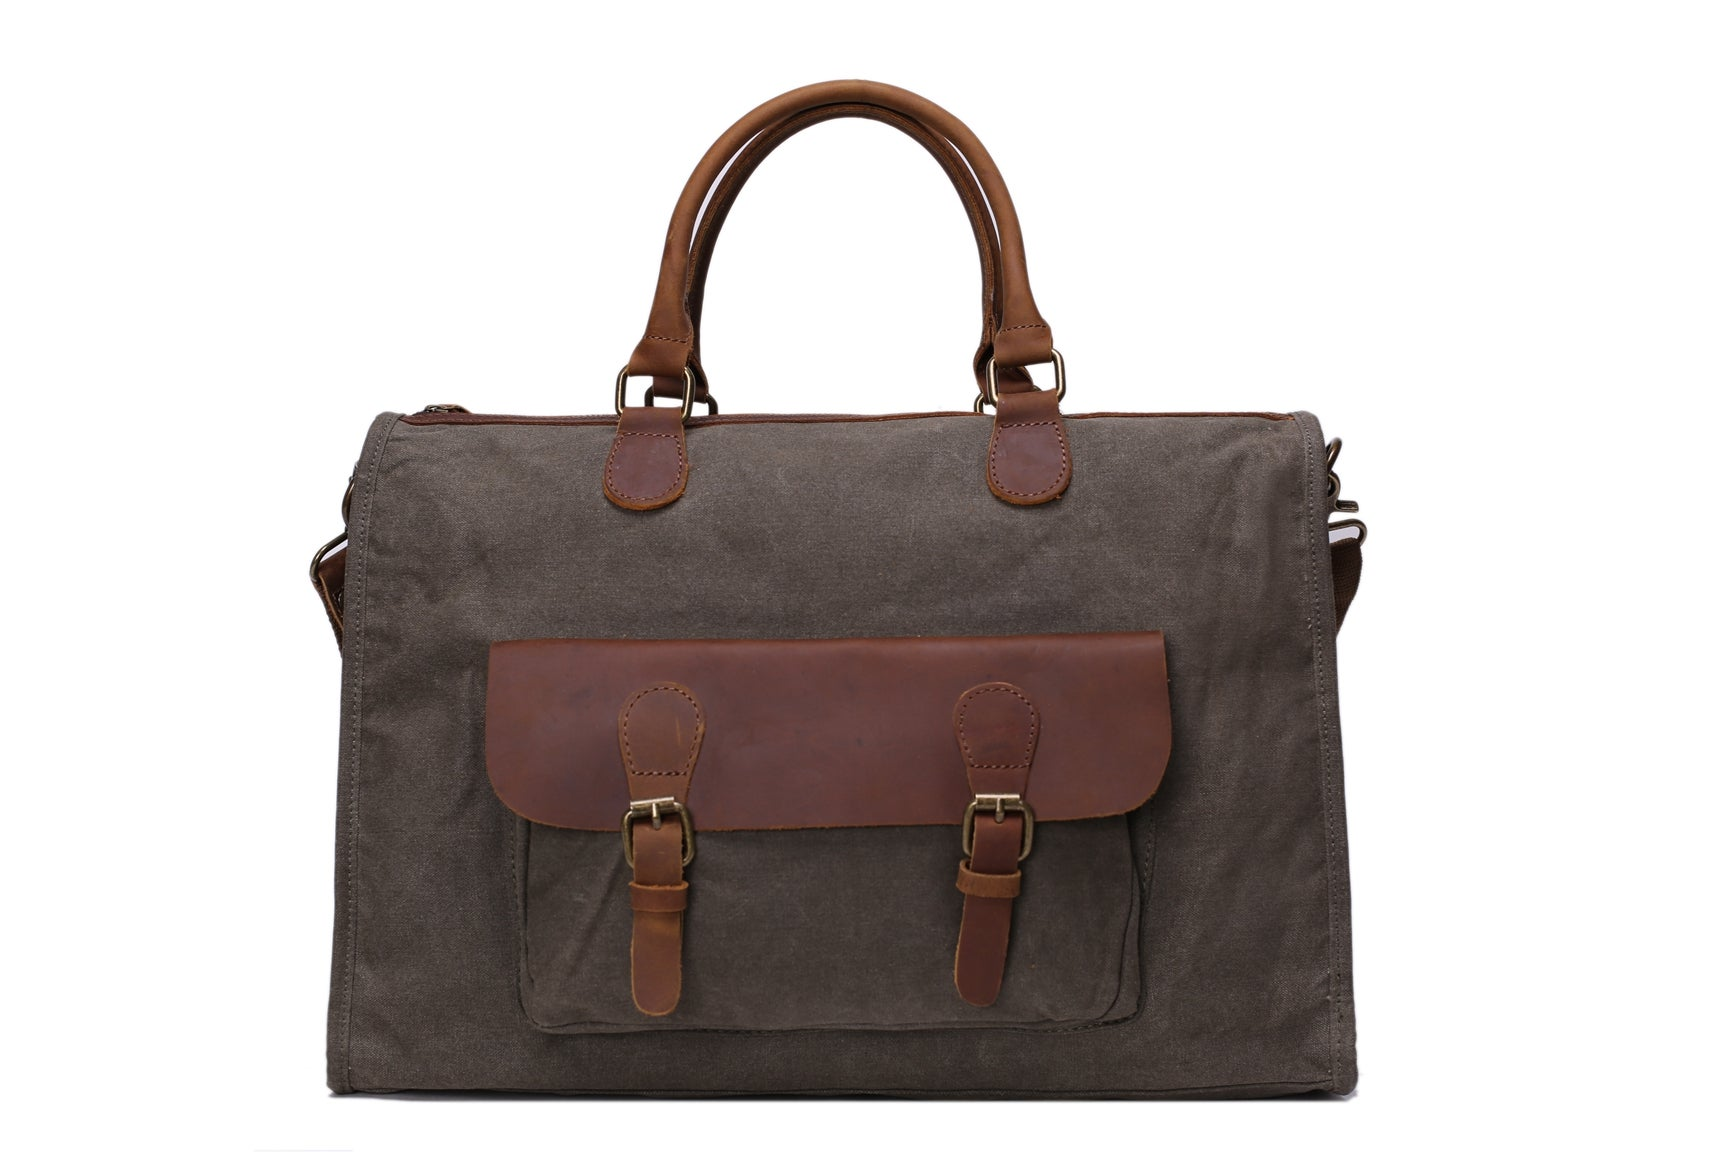 MoshiLeatherBag - Handmade Leather Bag Manufacturer — Waxed Canvas ...